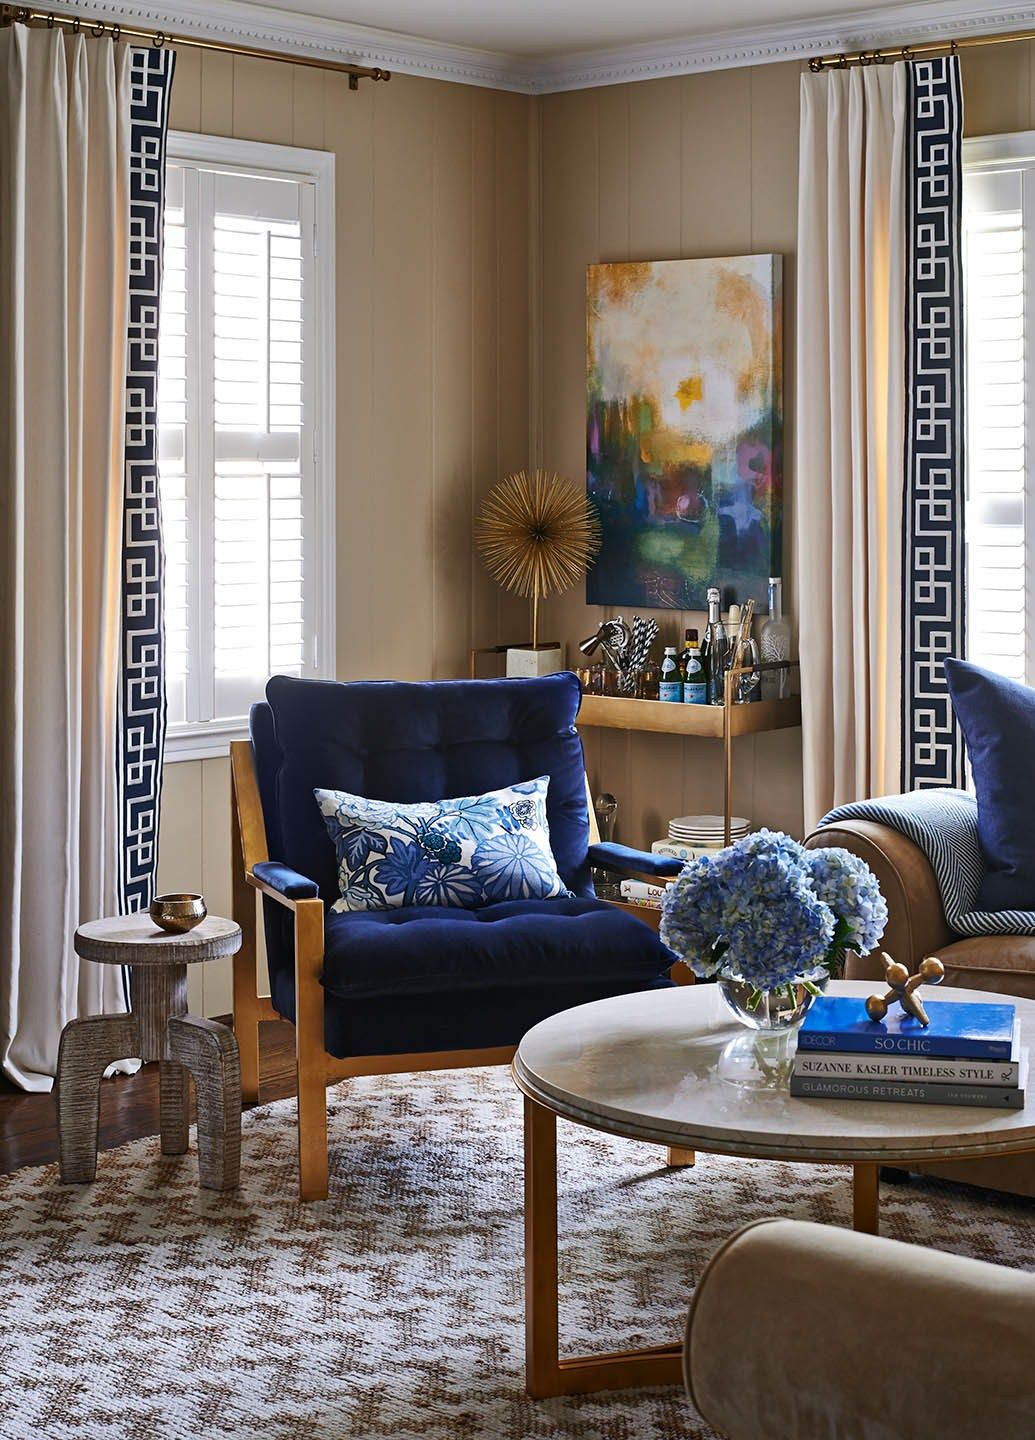 Interior Design Charlotte NC | Greek Key Trimmed Curtains | Traci Zeller  Interiors | Tracizeller.com